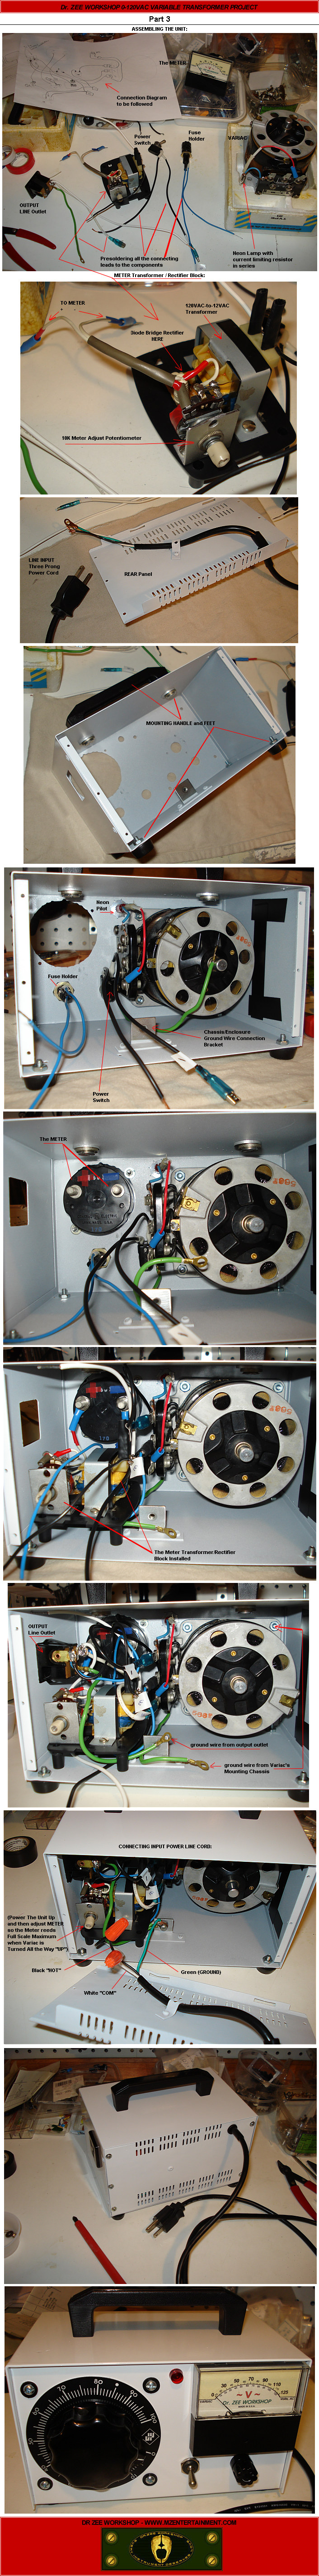 medium resolution of dr zee workshop variac circuit and wiring diagram powerstat variable transformers 21 22 40 series installation operation and maintenance